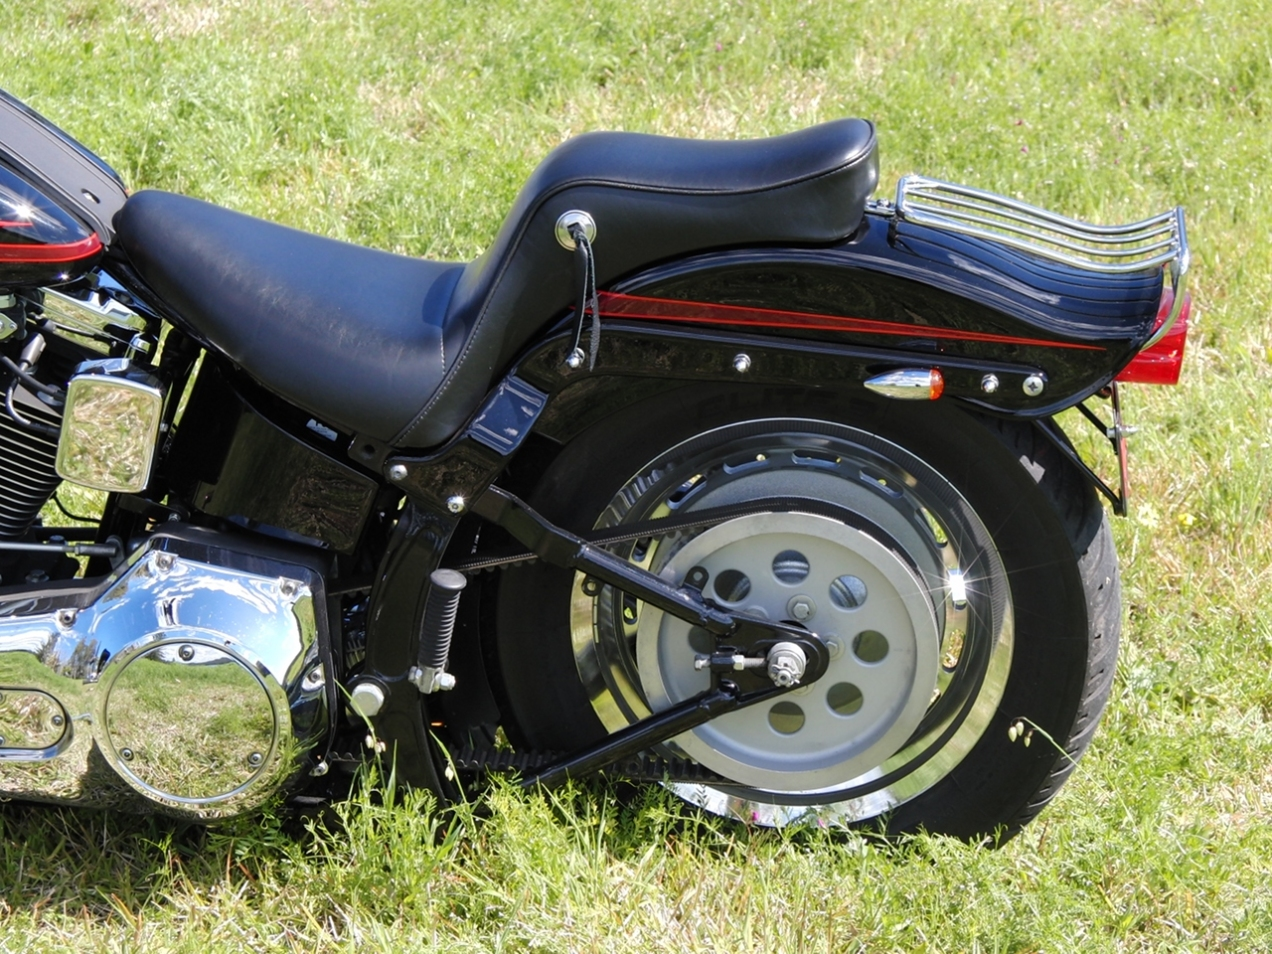 harley-davidson-softail-springer-1995-bad-boy-FXSTSB-evolution-1340-carlini-evil-apehangers-lepera-le-pera-cherokee-seat-jeremiah-watt-slotted-concho-joker-machine-mirrors-psalmistice_CIMG2822